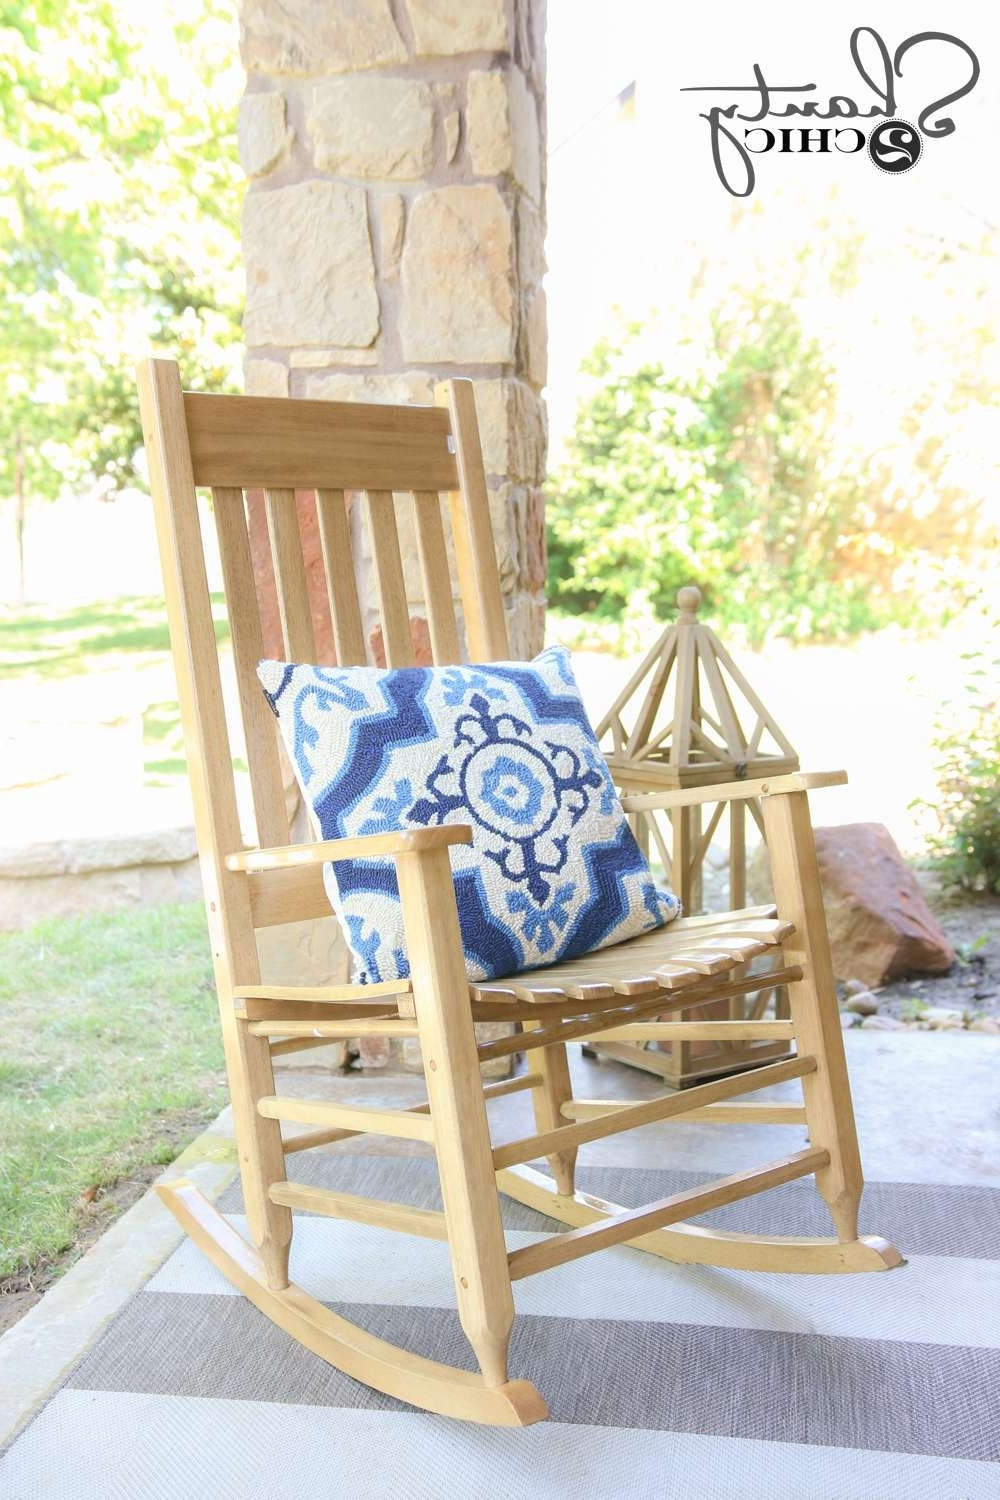 Wayfair Rocking Chair Luxury Wayfair Back Patio Makeover Shanty 2 Intended For Widely Used Rocking Chairs At Wayfair (View 16 of 20)